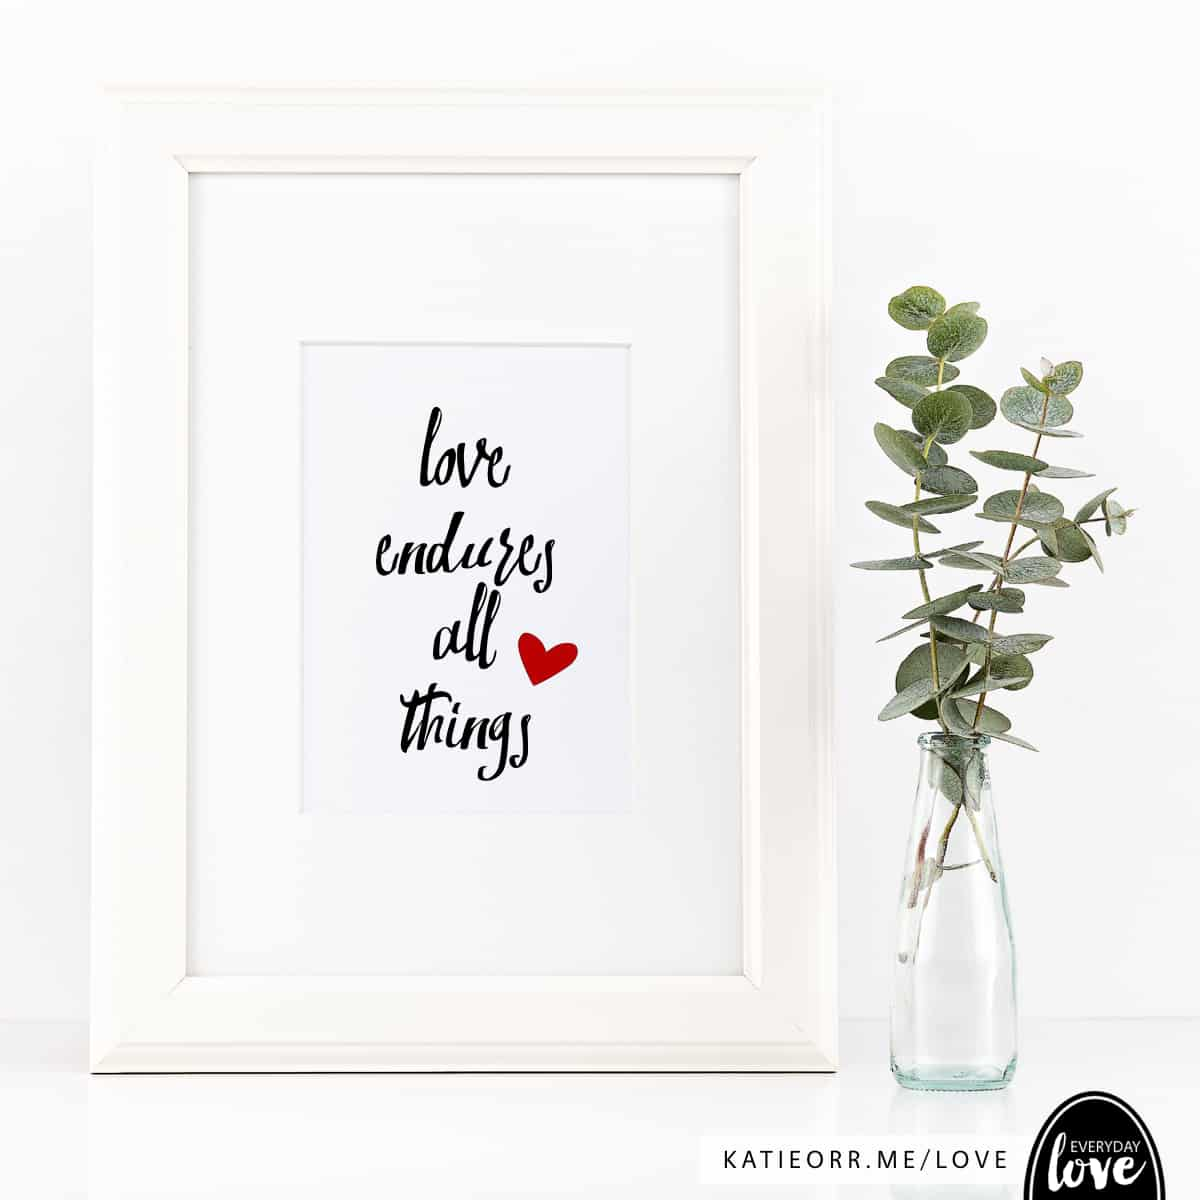 Everyday Love Images.007